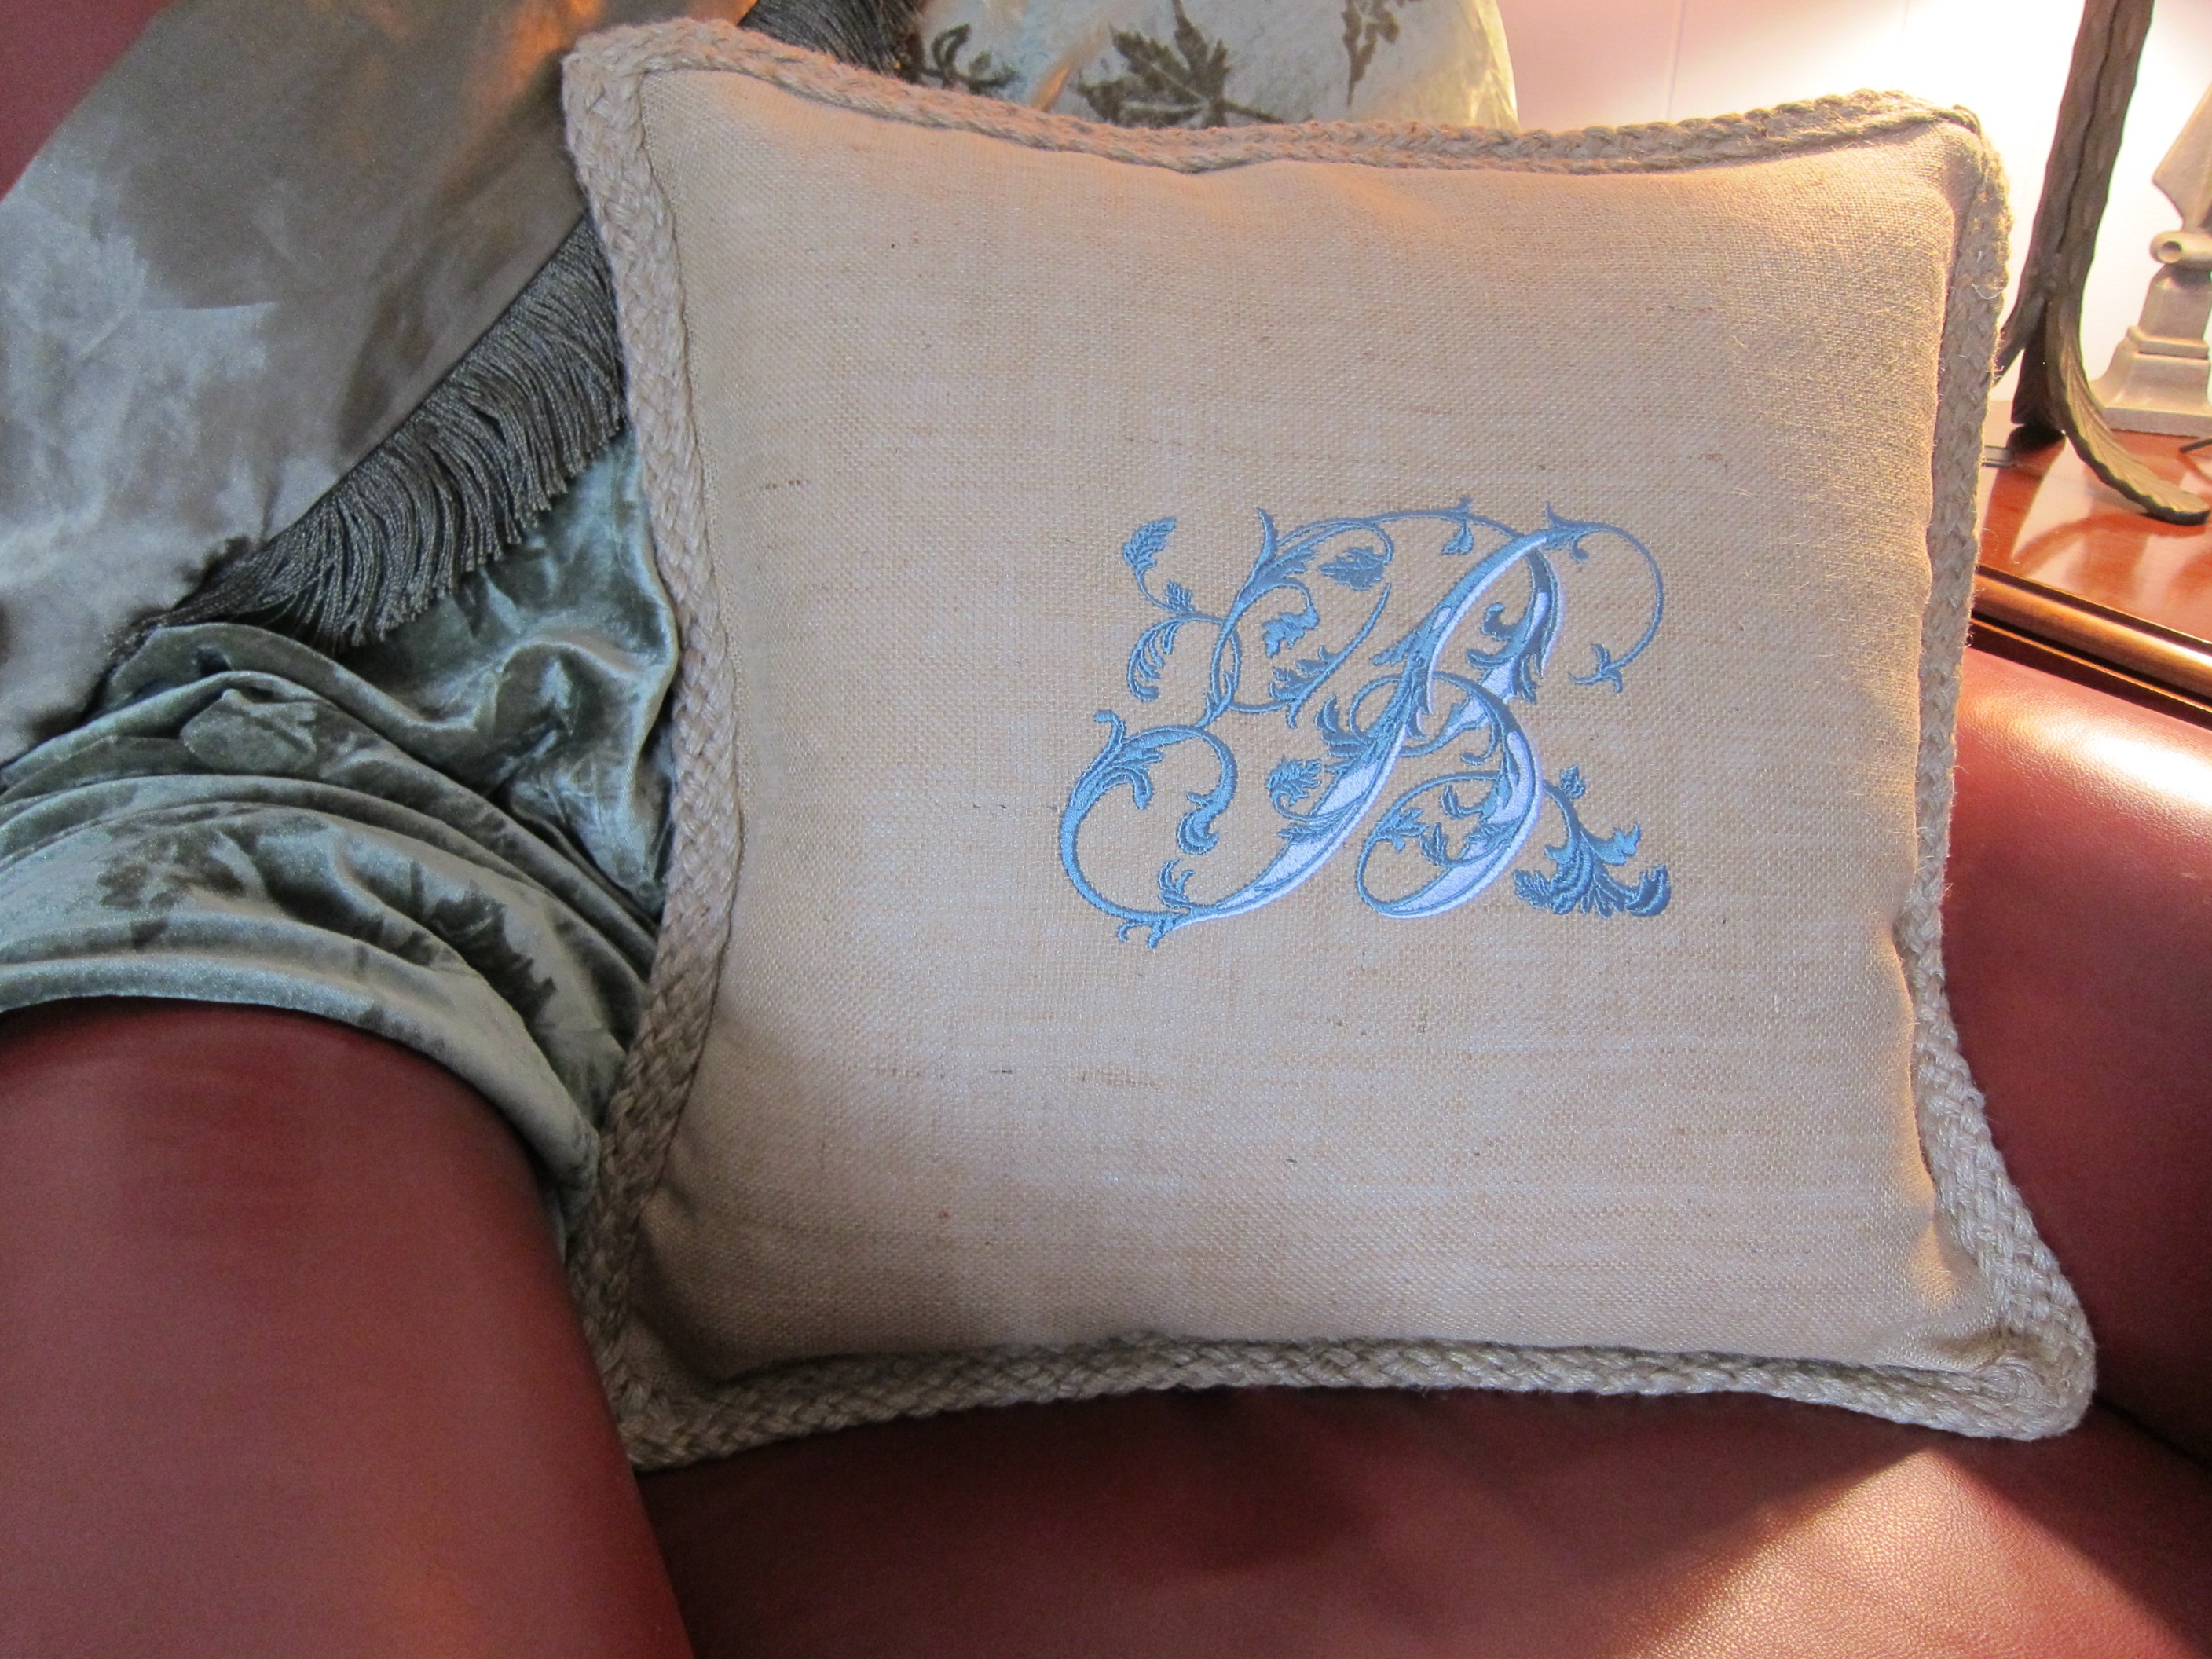 Embroidered Pillow on Chair